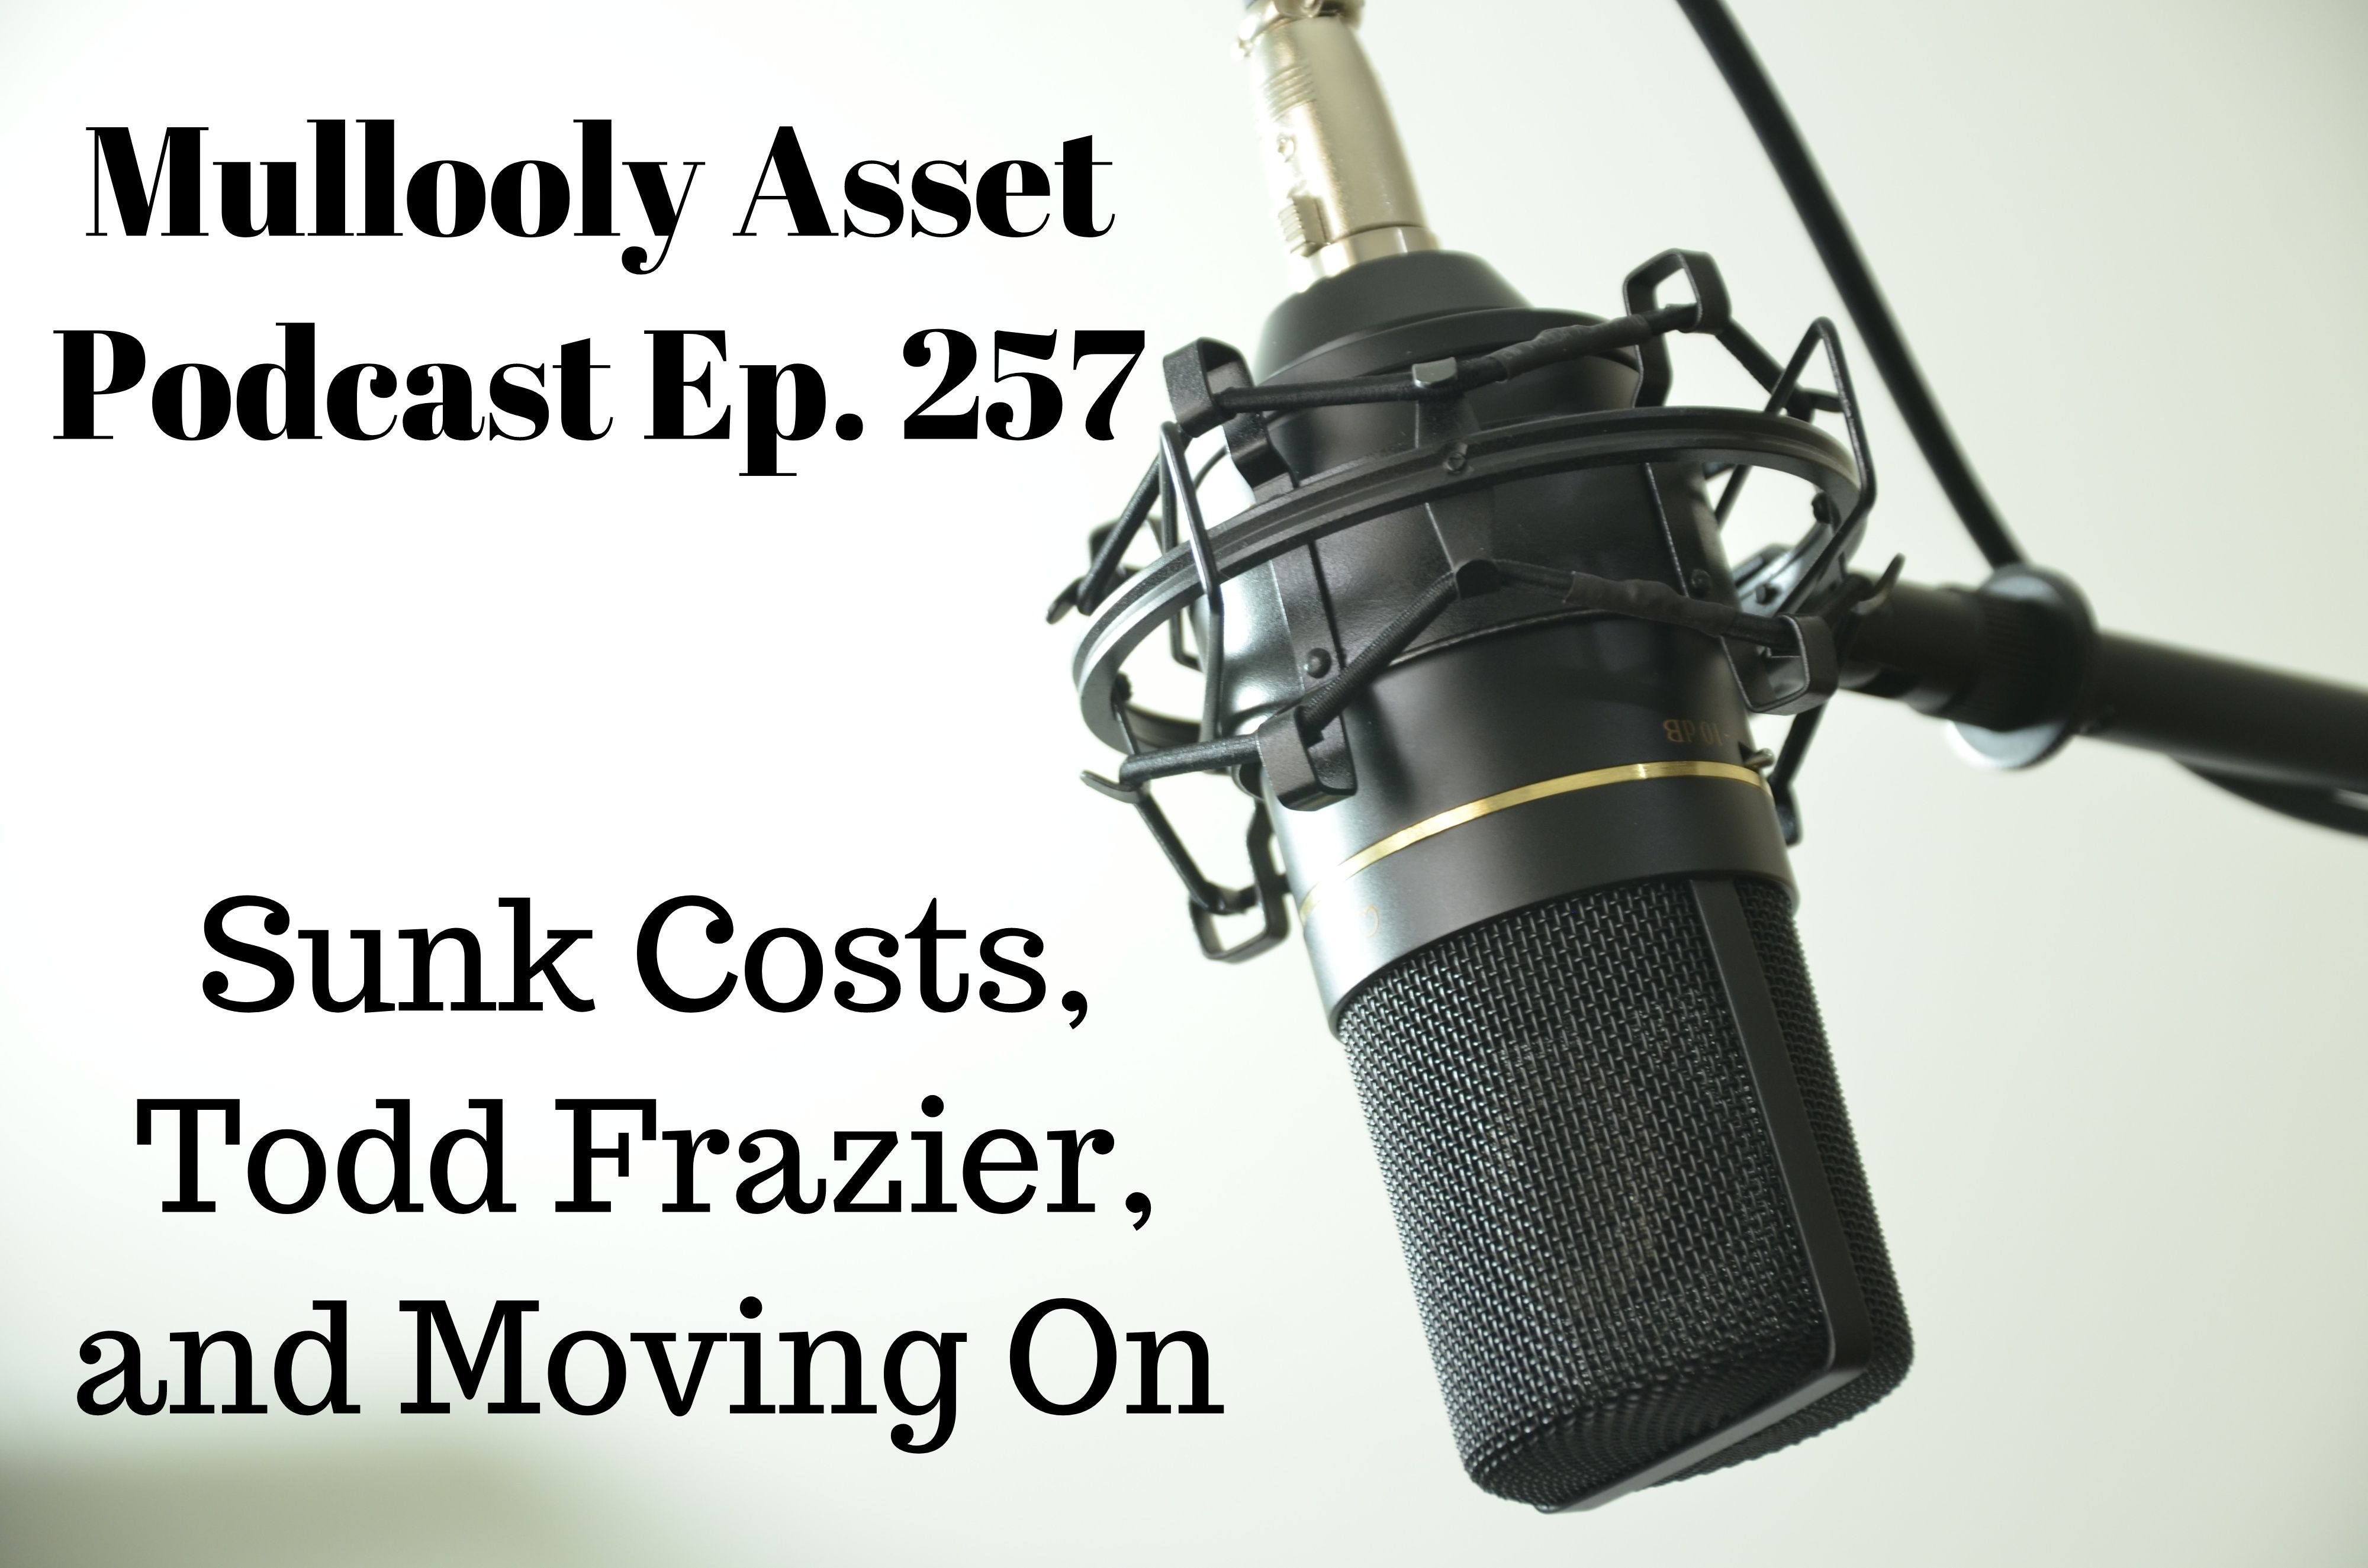 Sunk Costs, Todd Frazier, and Moving On